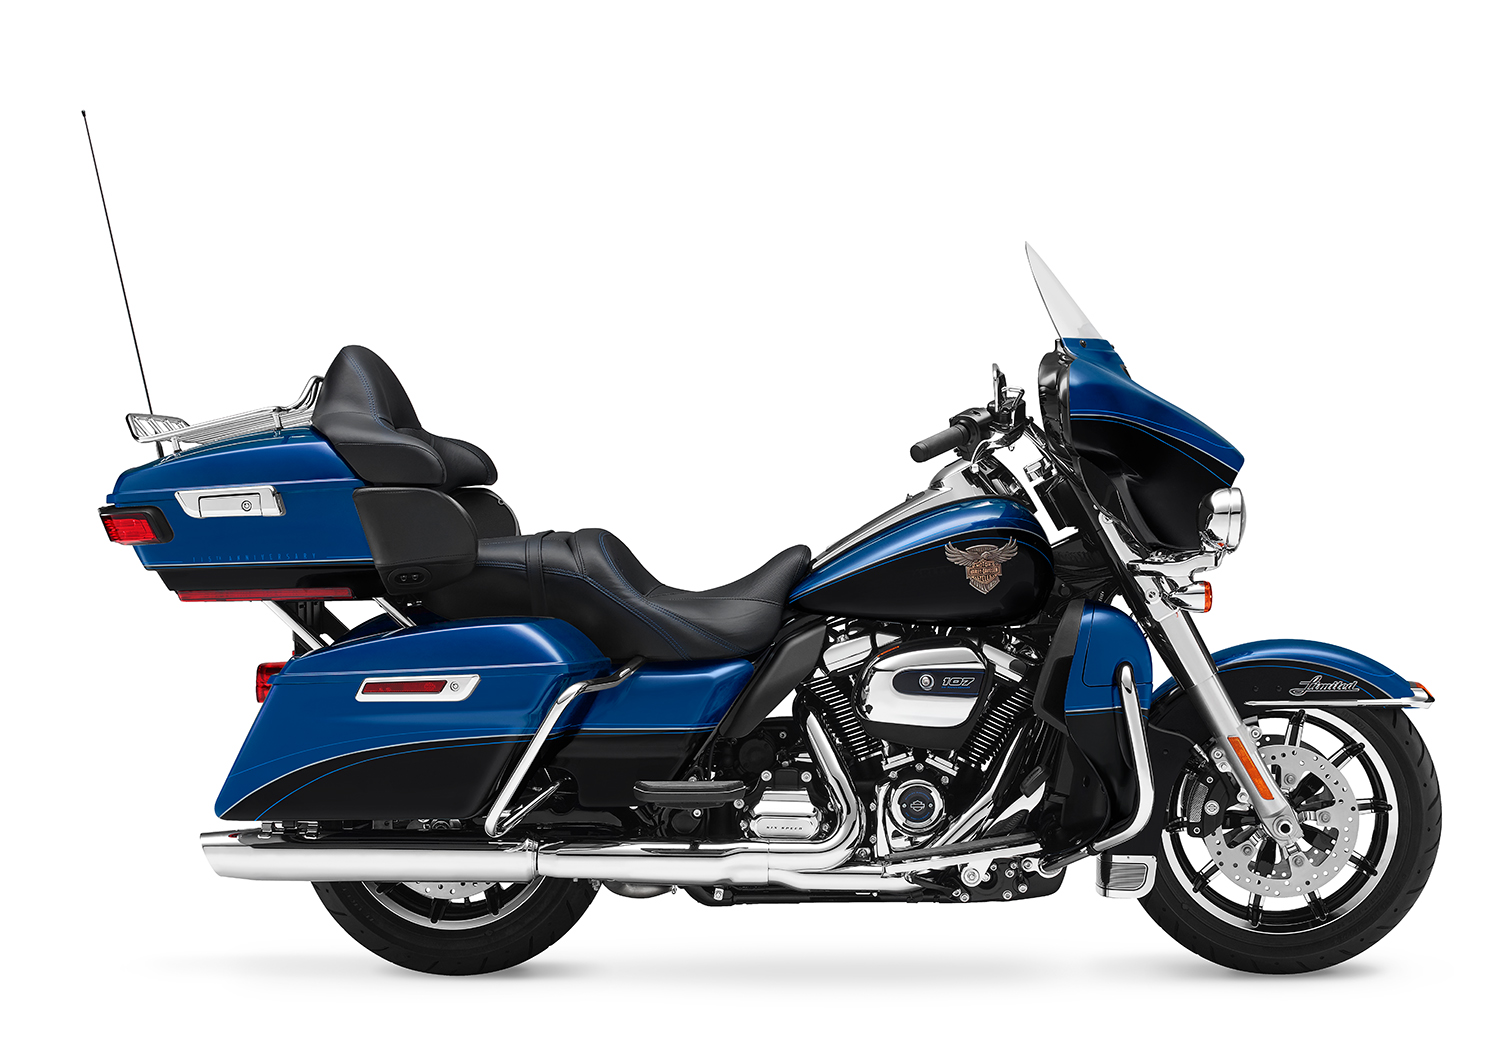 2018 FLHTK ANV Electra Glide Ultra Limited Anniversary. Touring